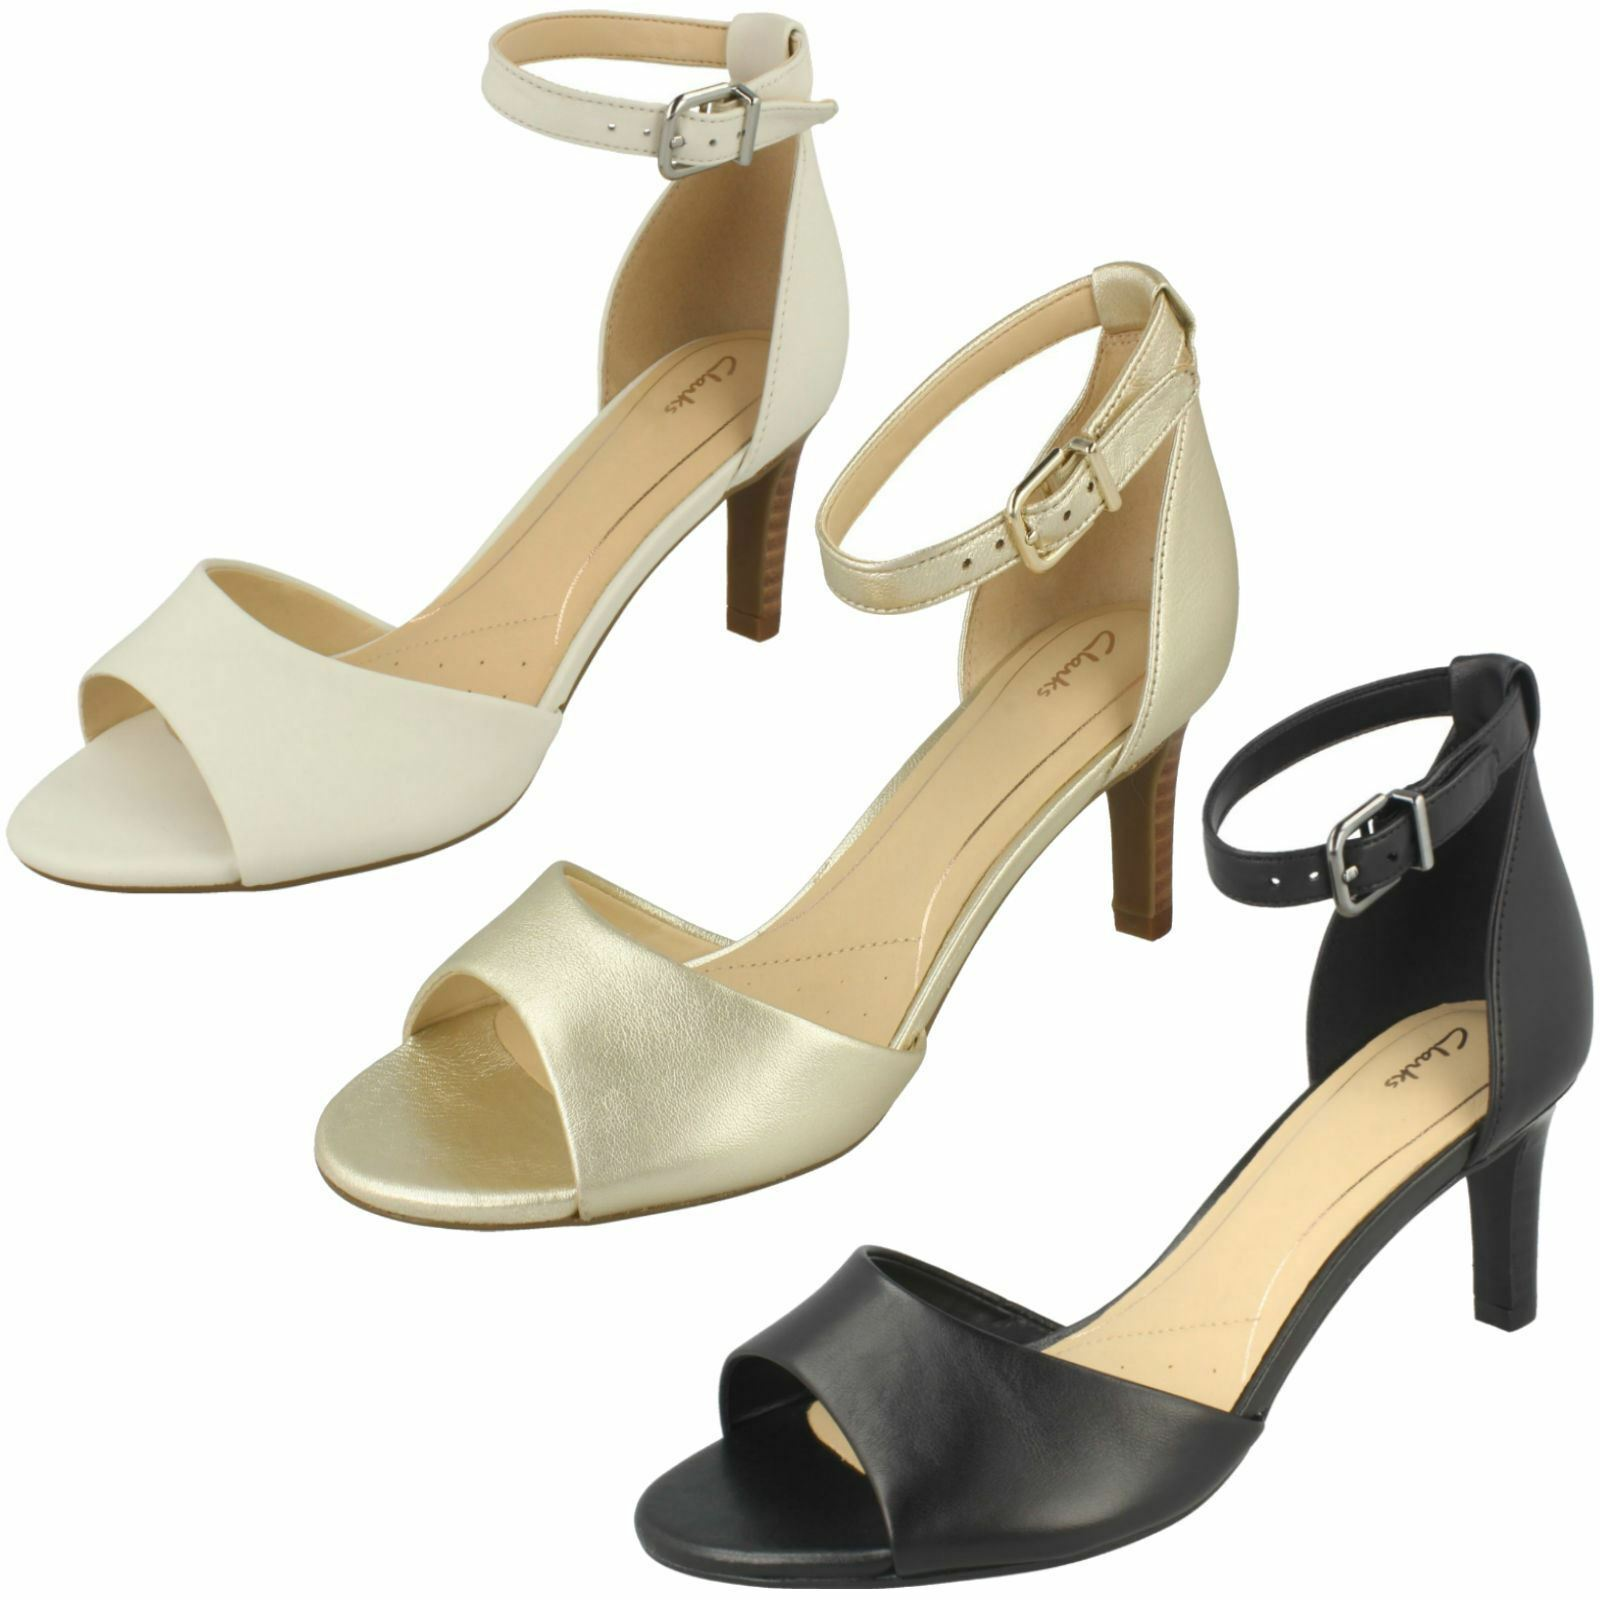 Ladies Clarks Elegant Stiletto Buckled Heeled Leather Sandals Laureti Laureti Laureti Grace da919c